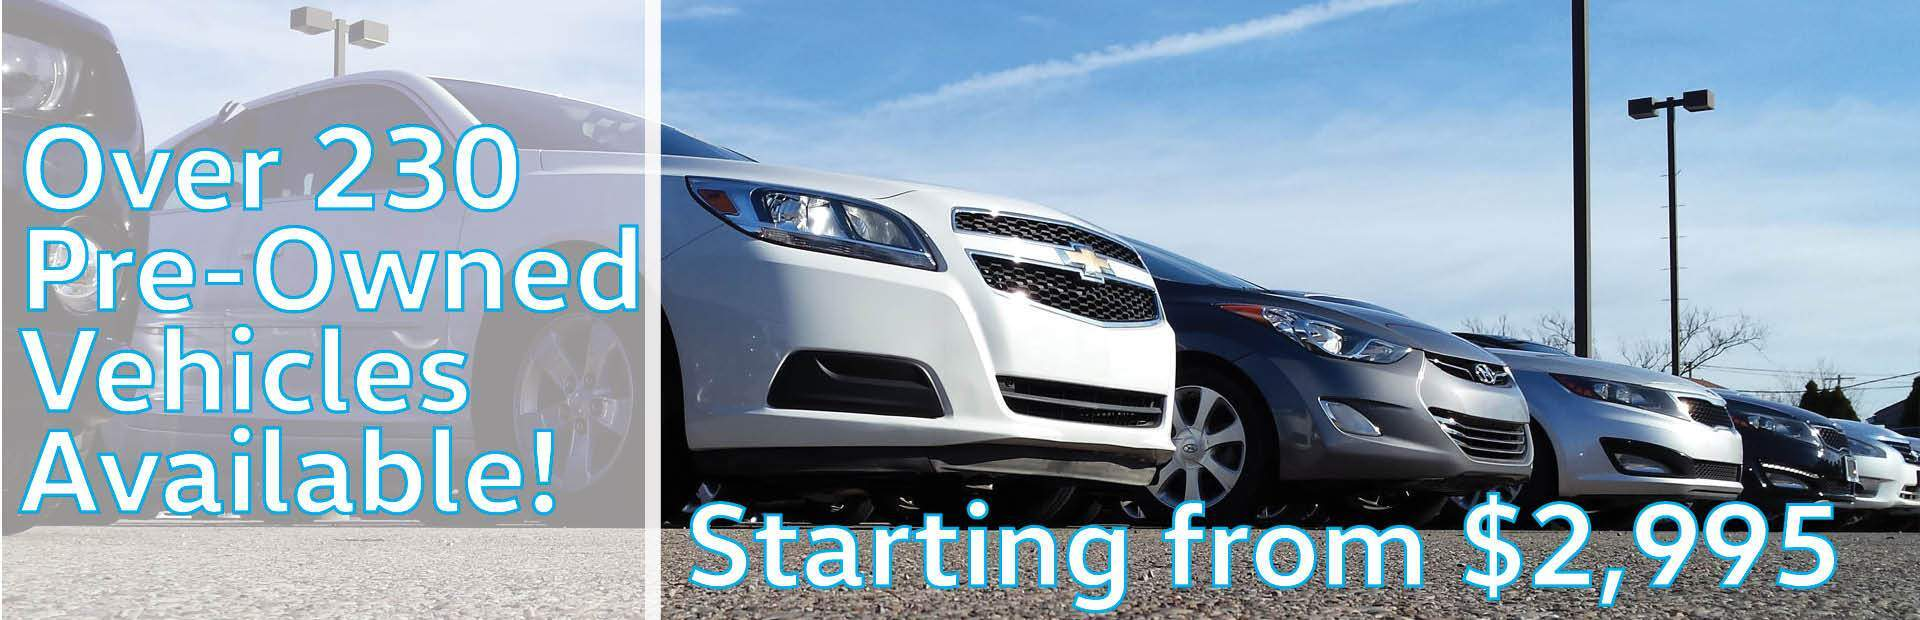 Pre-Owned Vehicles!